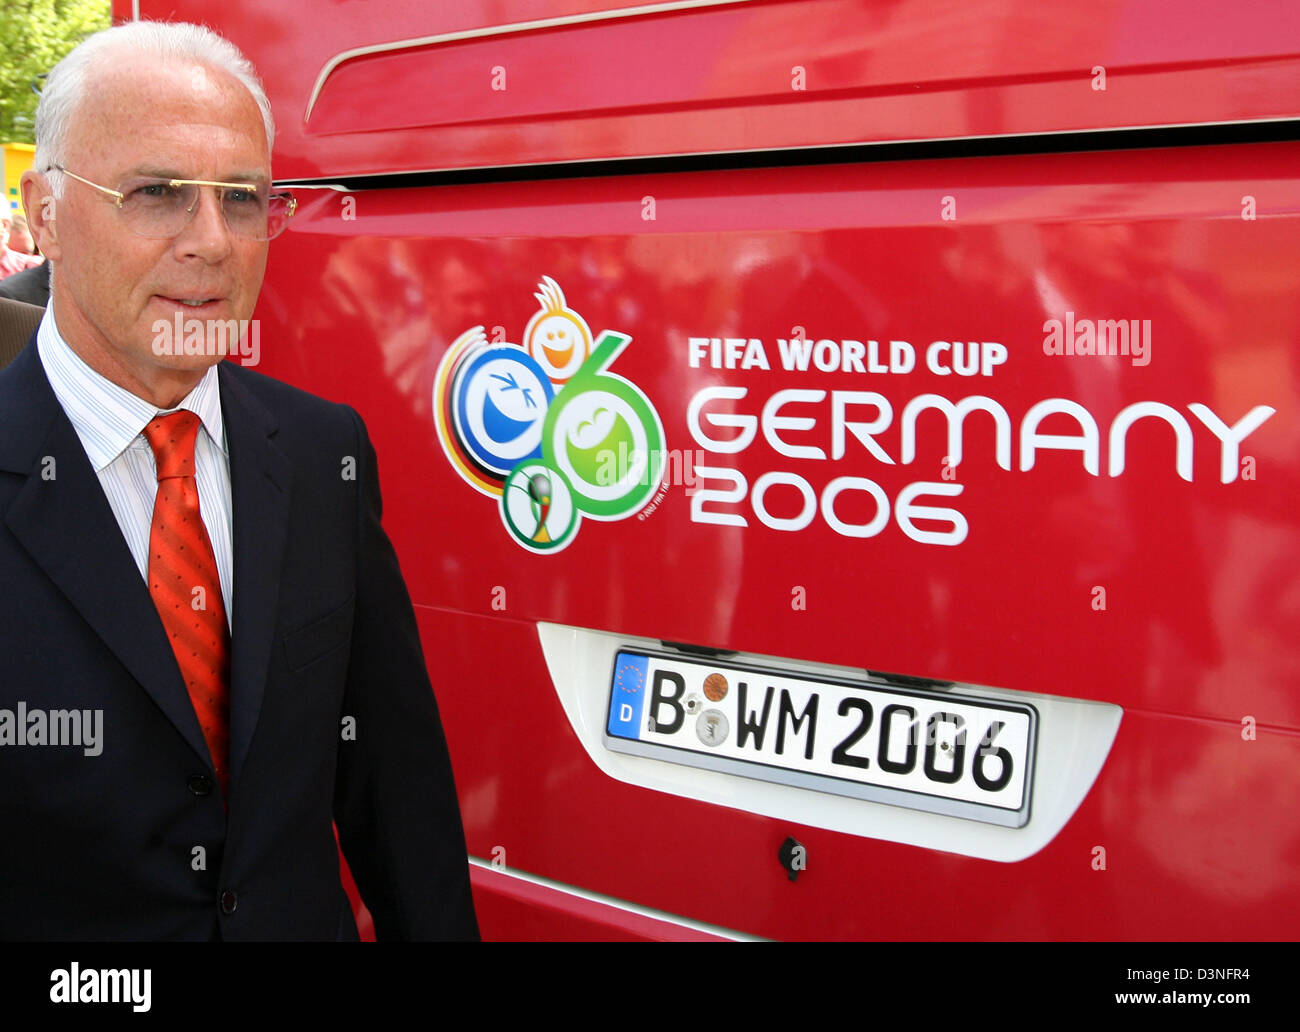 President of the FIFA World Cup 2006 organising committee Franz Beckenbauer is pictured during the handover of the - Stock Image